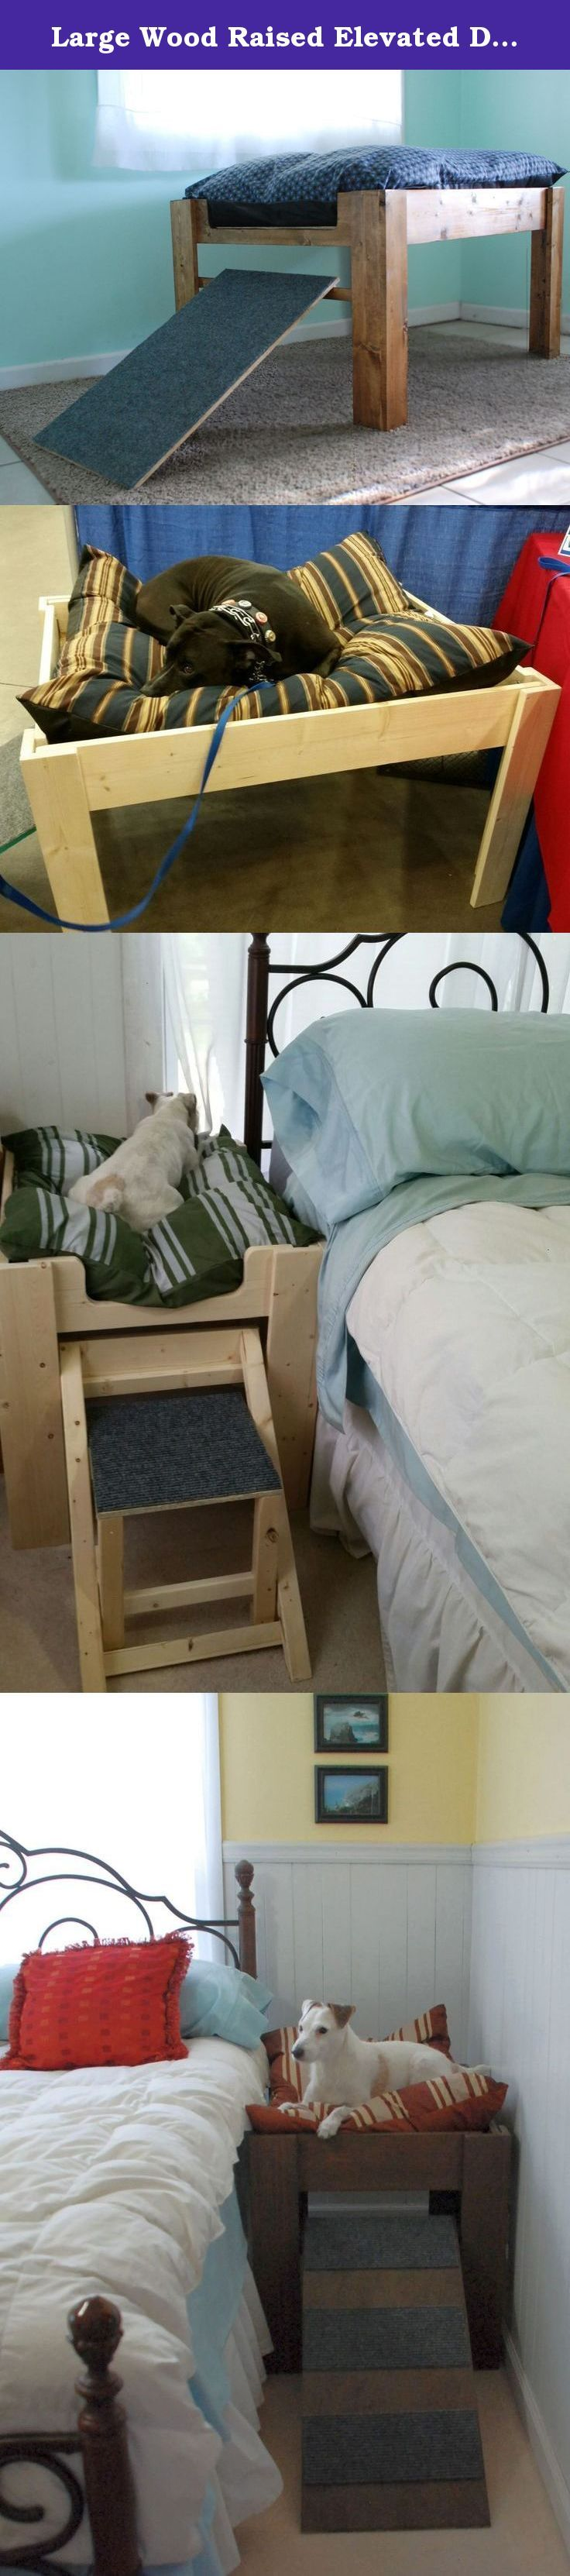 Large Wood Raised Elevated Dog Bed Furniture. Put Your Pet Next to You, with Ramp or Step for Larger dog, Lab/Etc. This is a larger version of our original bed. Designed for a Lab or similar size dog. We can also do custom sizes if you already have a pillow bed to use. The idea for this bed came from our own personal needs. Our Jack Russell was taking up the bed for years. We would awaken every time he would move in and out of the covers. We weren't sure he would agree to sleeping alone...